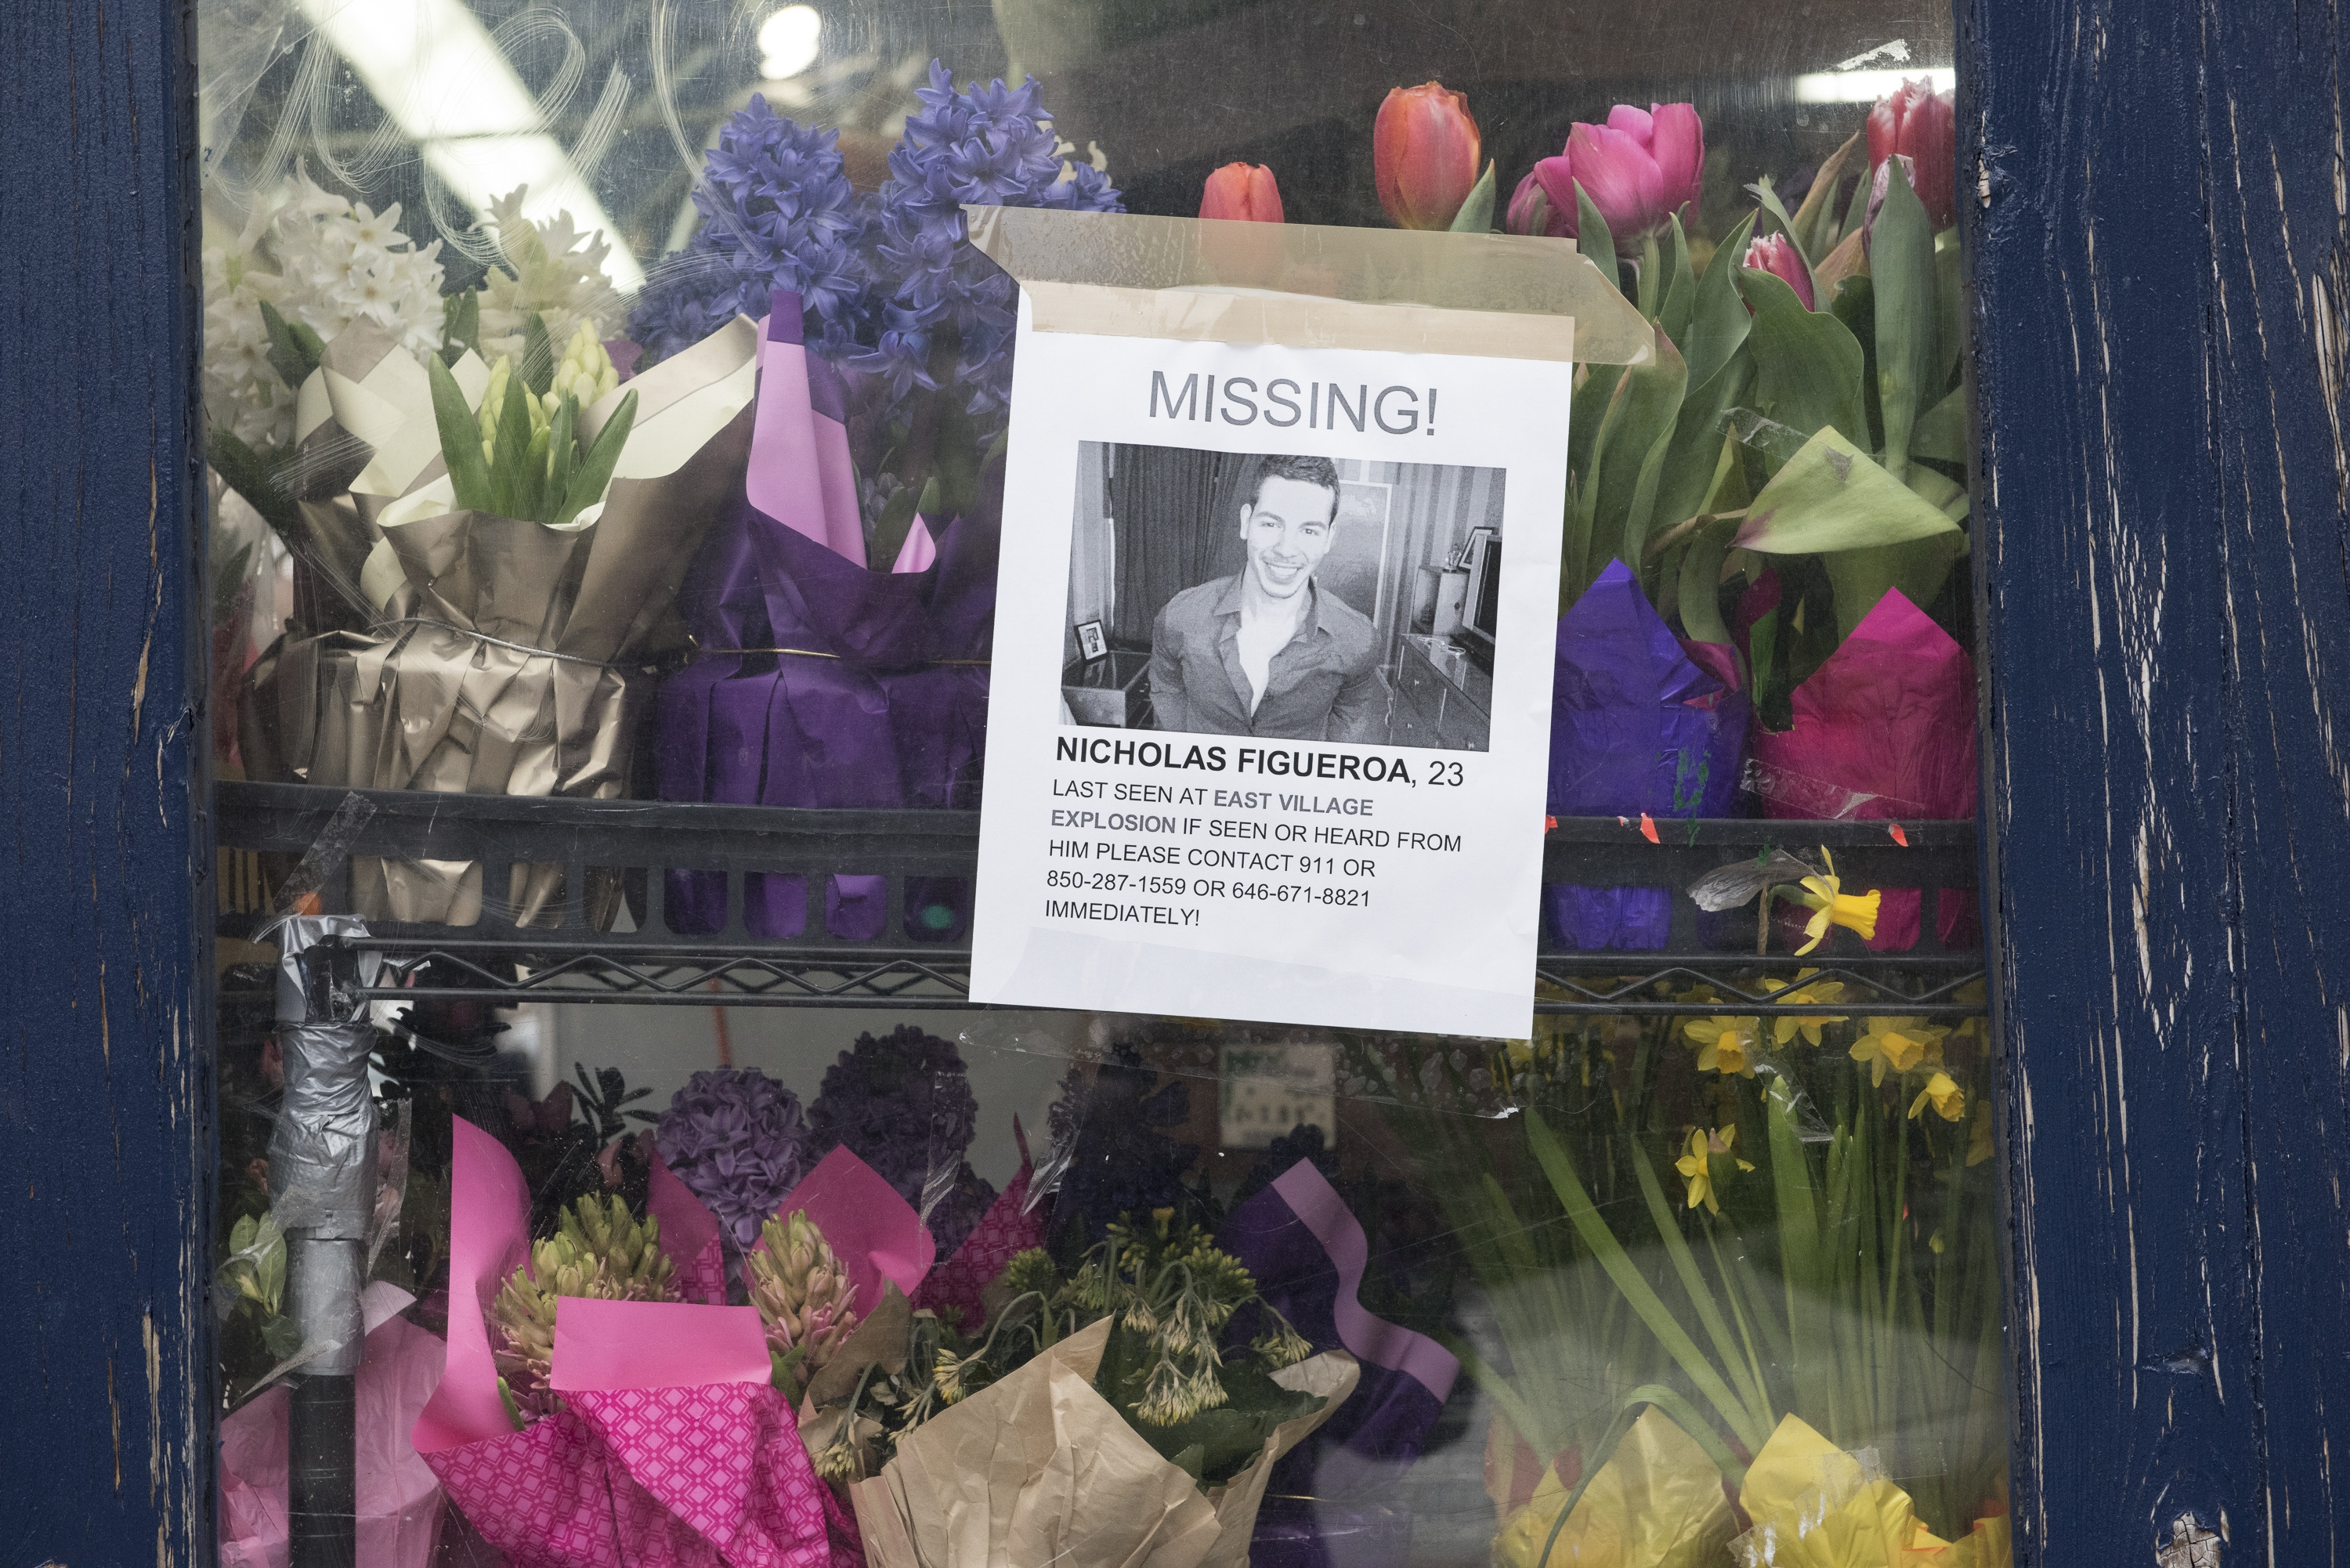 A poster seeks information on Nicholas Figueroa, missing in Thursday's explosion.